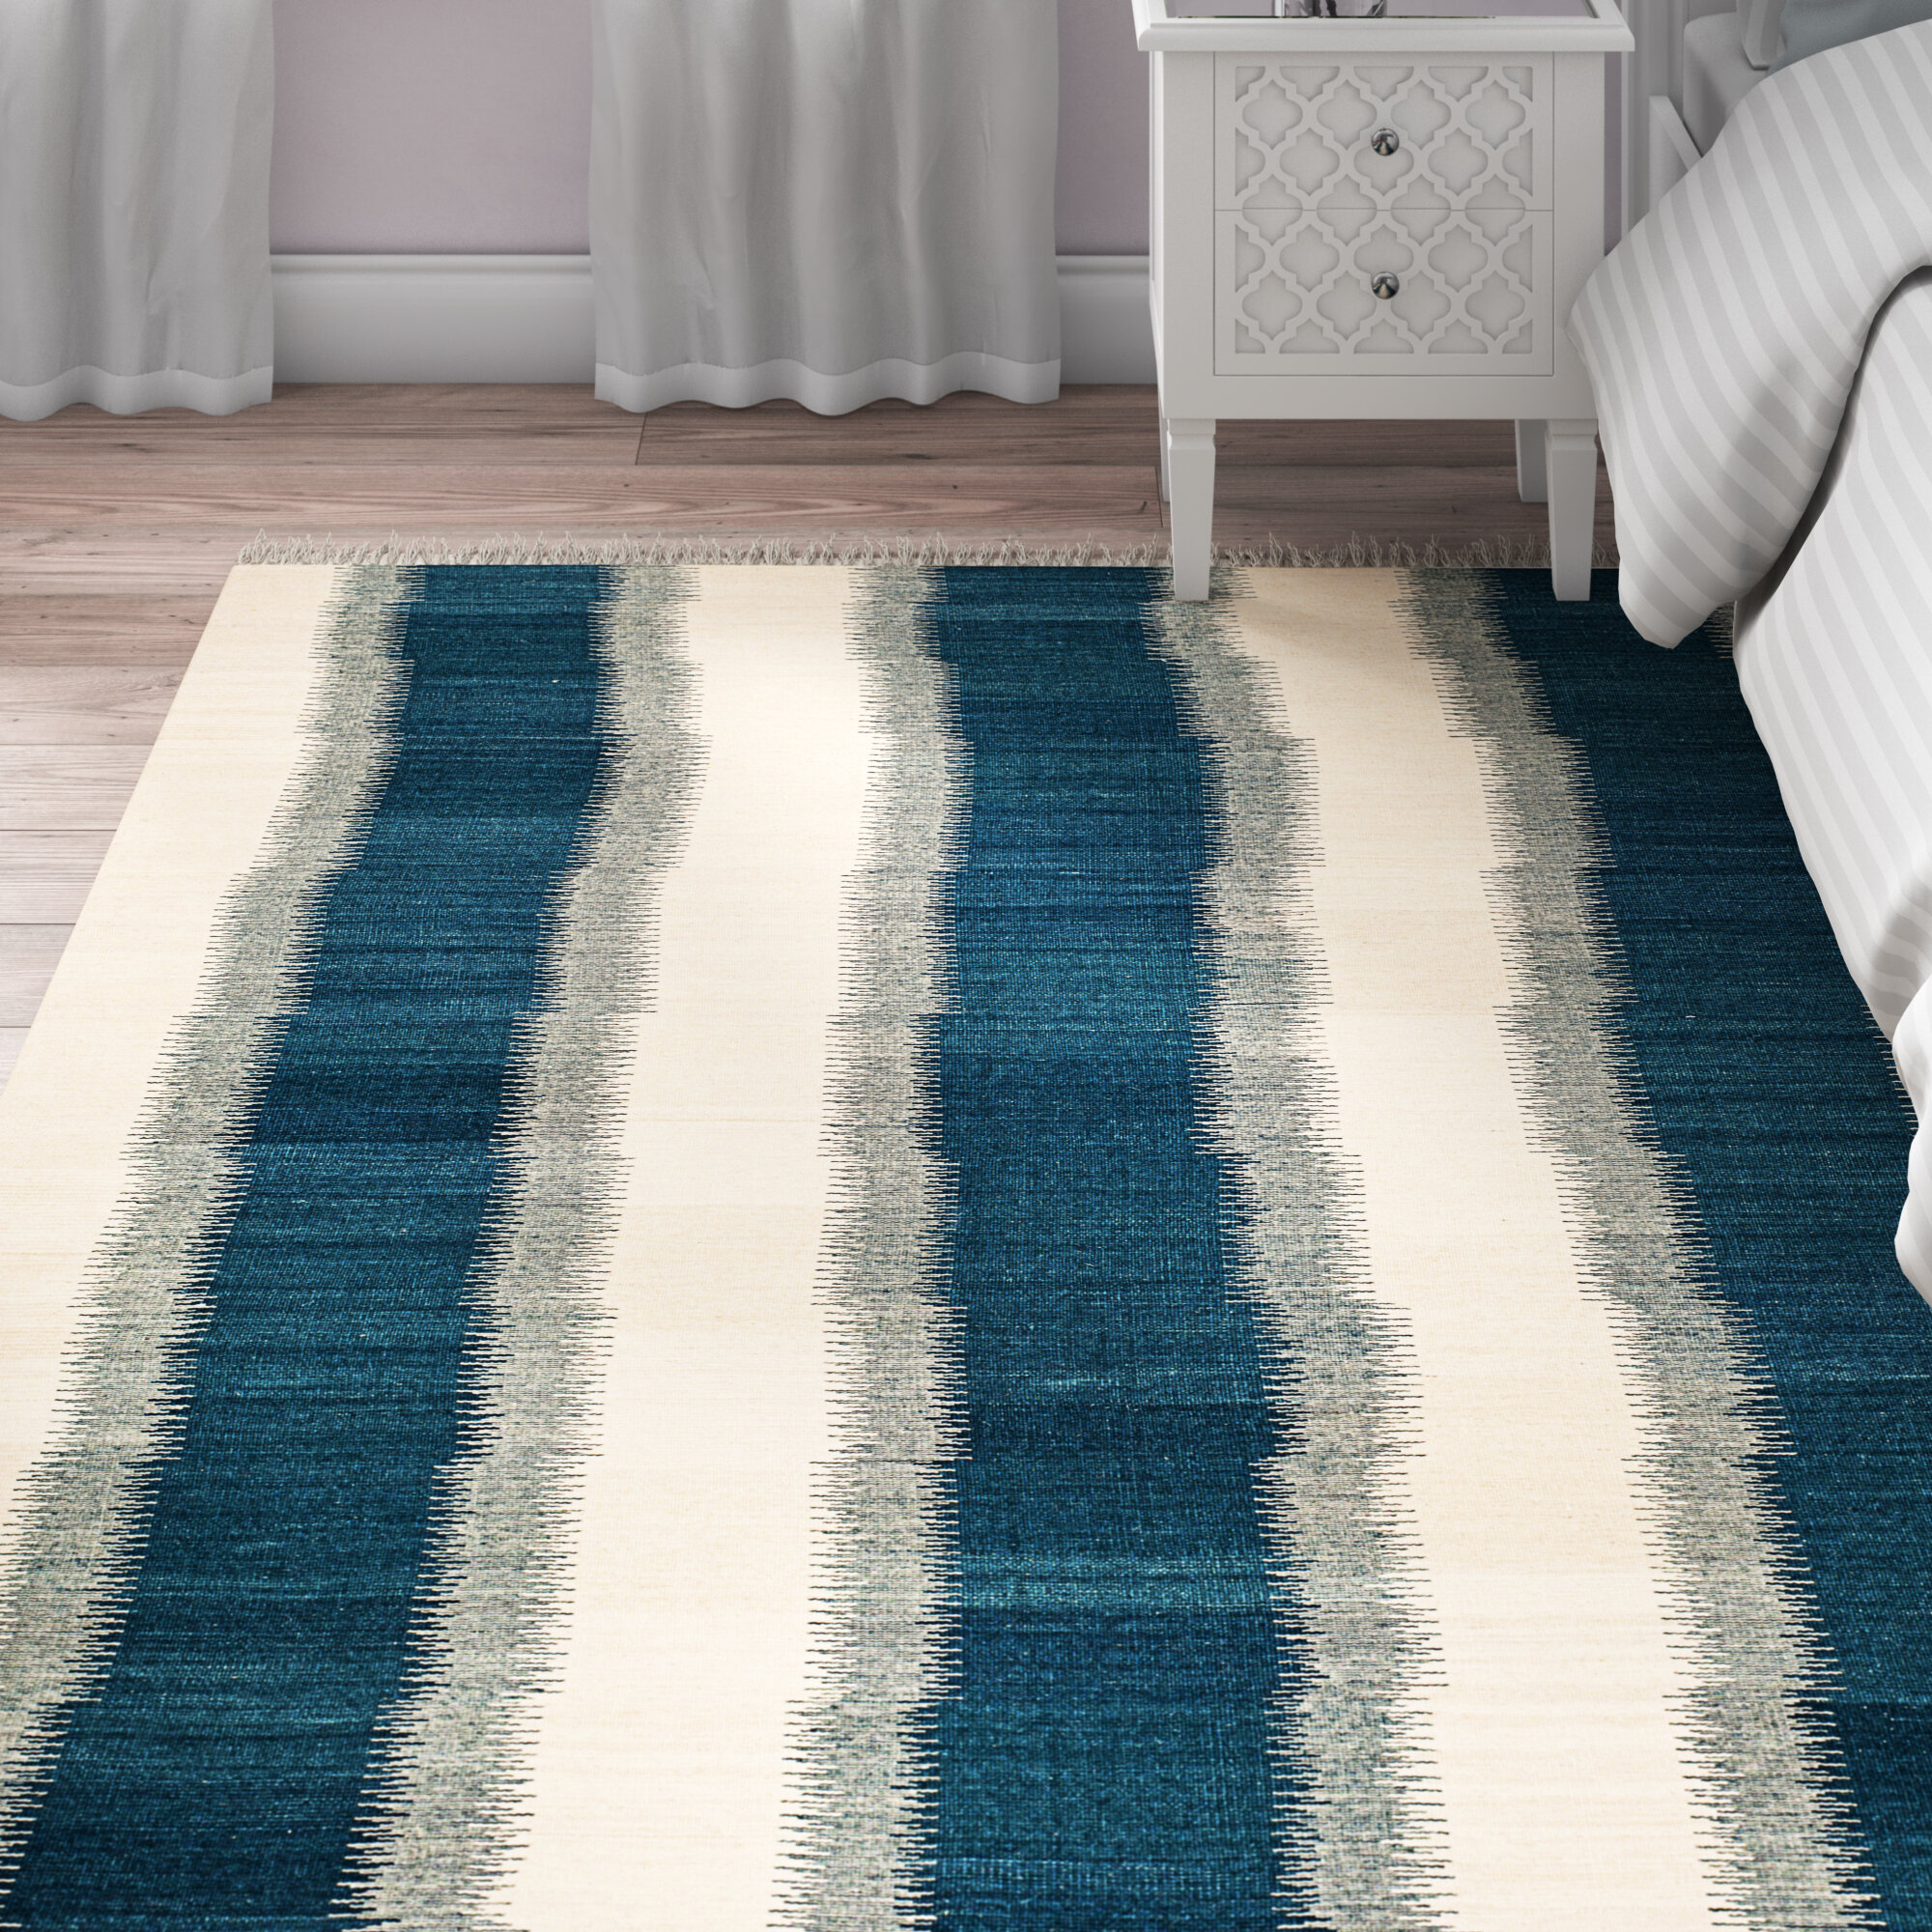 Breakwater Bay Fitzpatrick Handwoven Flatweave Wool Blue Area Rug Reviews Wayfair